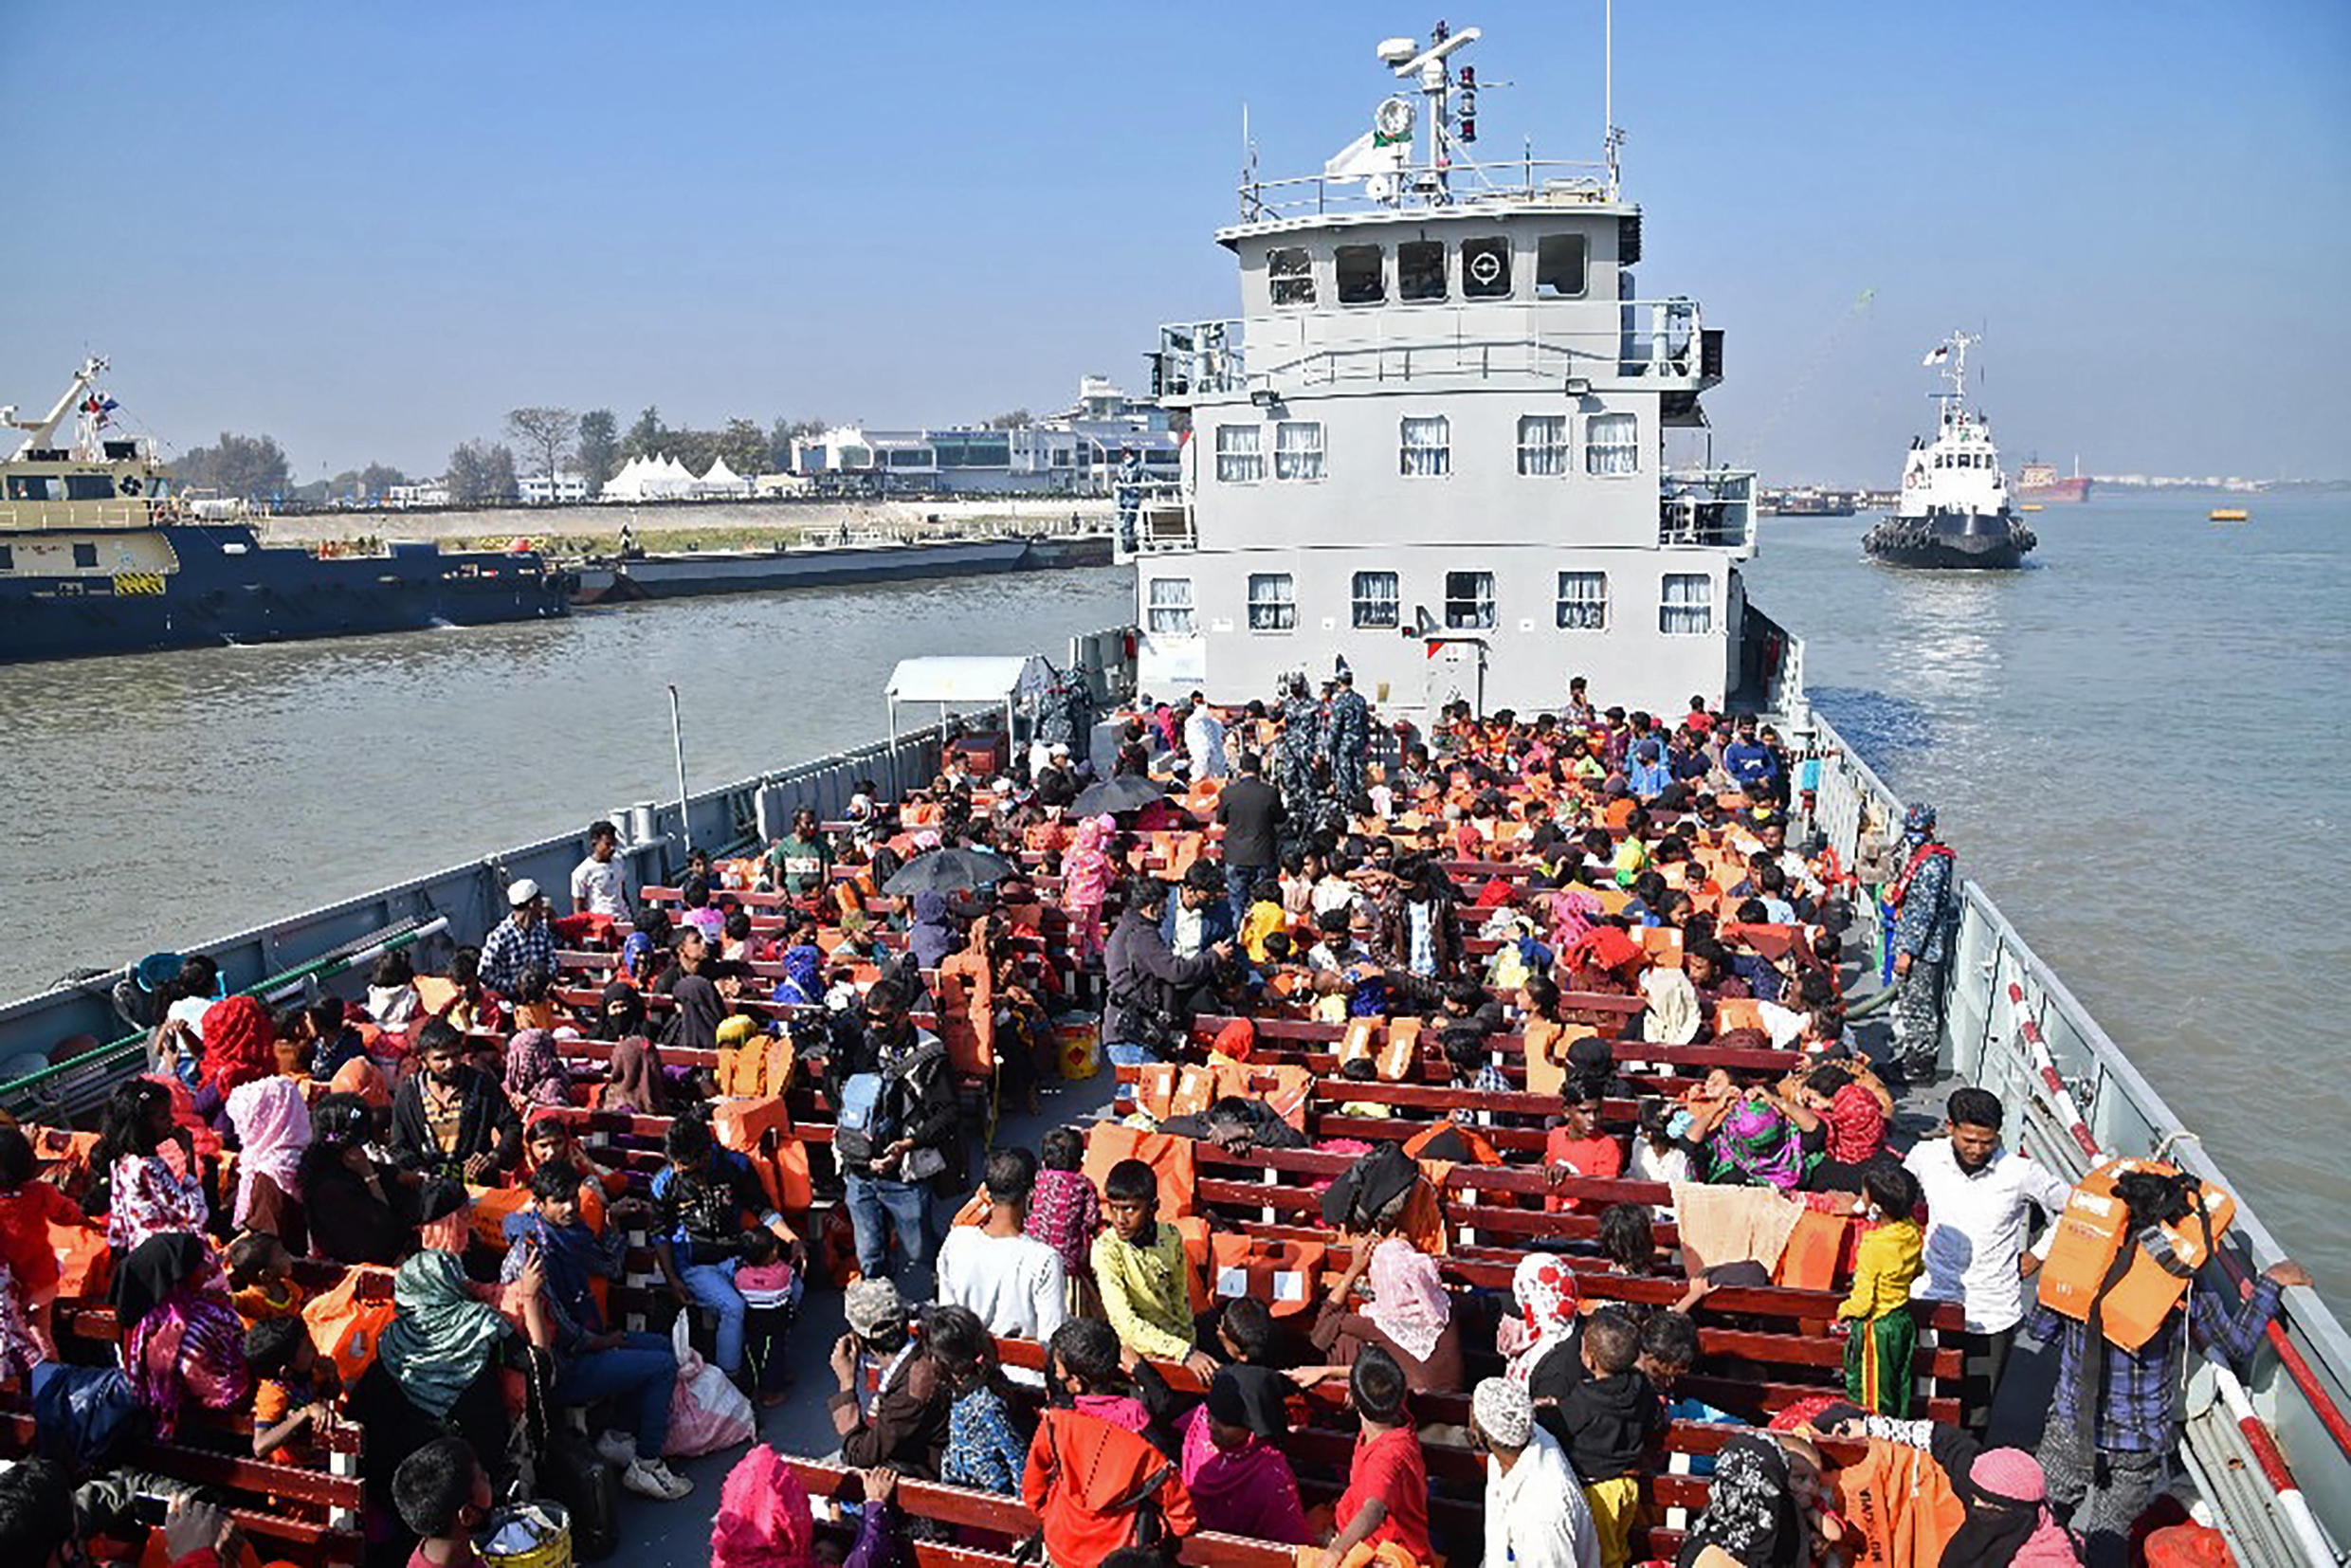 Hundreds of Rohingyas were moved by boat to the remote island of Bhashan Char in the Bay of Bengal in December 2020, part of the Bangladesh government's plan to decongest refugee camps in Cox's Bazar.